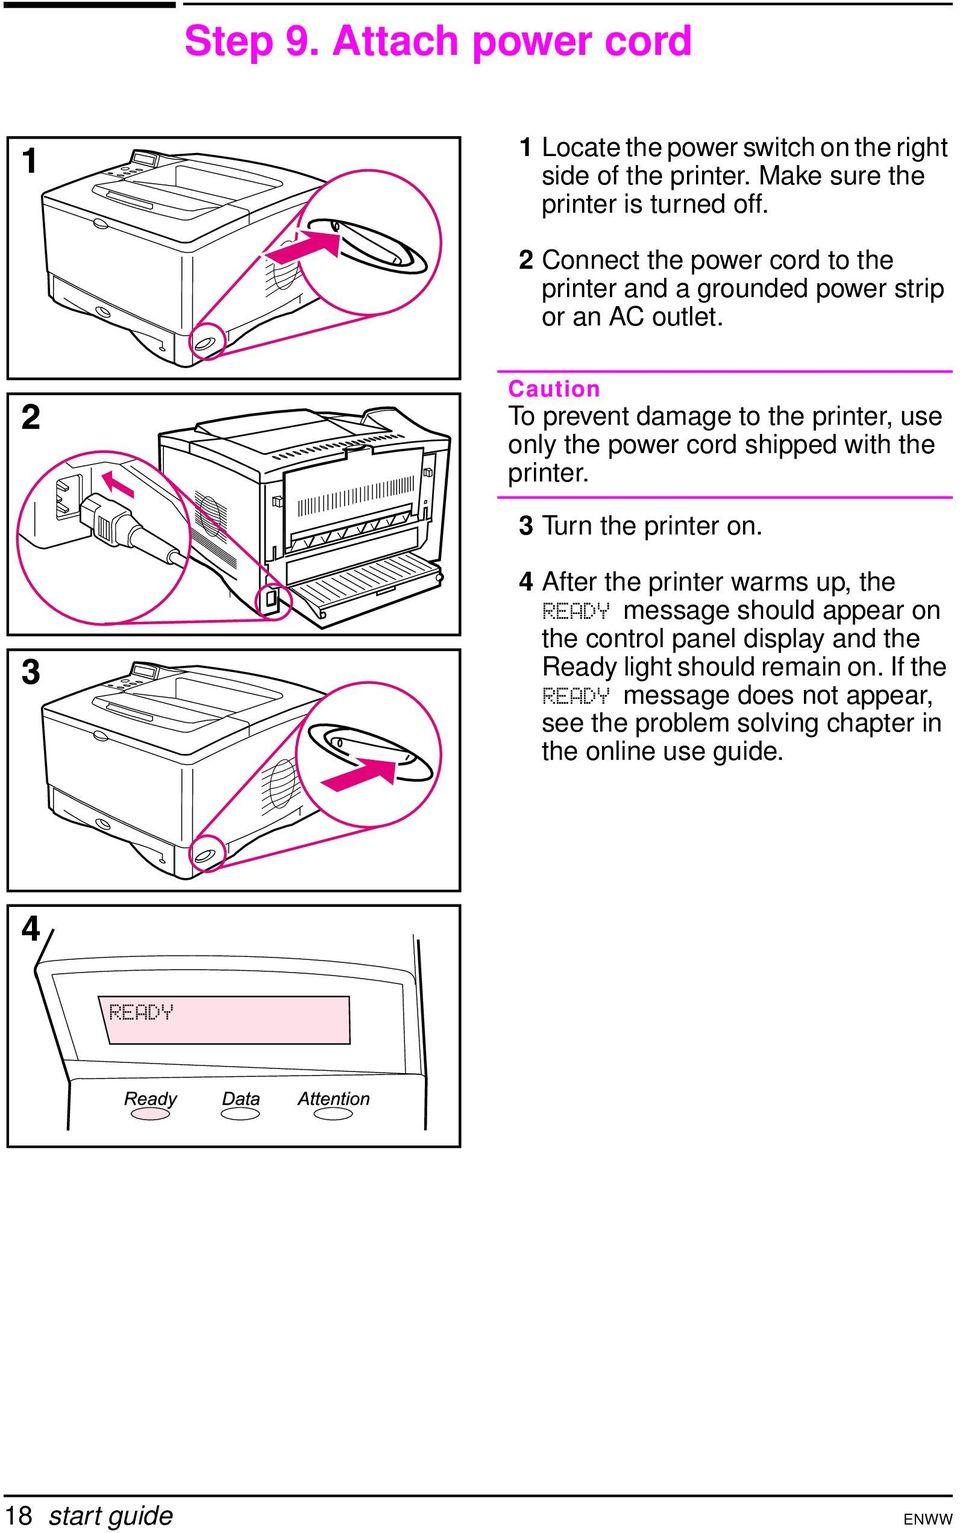 Caution To prevent damage to the printer, use only the power cord shipped with the printer. 3 Turn the printer on.